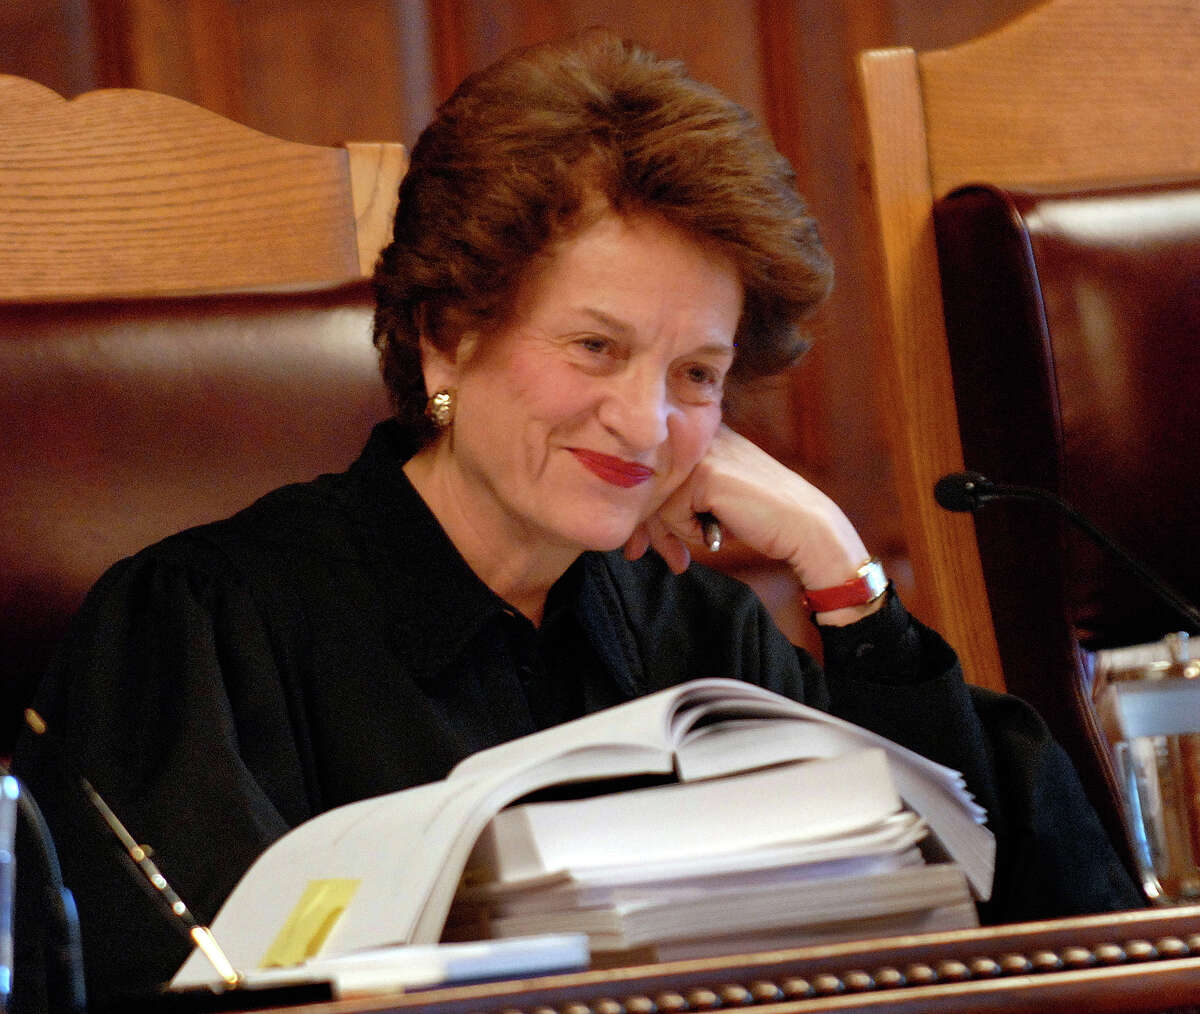 FILE - In this Nov. 20, 2008, file photo Chief Judge Judith Kaye listens to her last session of oral arguments at the New York Court of Appeals in Albany, N.Y. Kaye, the first woman appointed to New Yorkís top court and later its chief judge, died Wednesday Jan. 6, 2016, the state court system said. She was 77 and lived in Manhattan. The cause of her death wasnít initially available. (AP Photo/Hans Pennink, File) ORG XMIT: NYR102